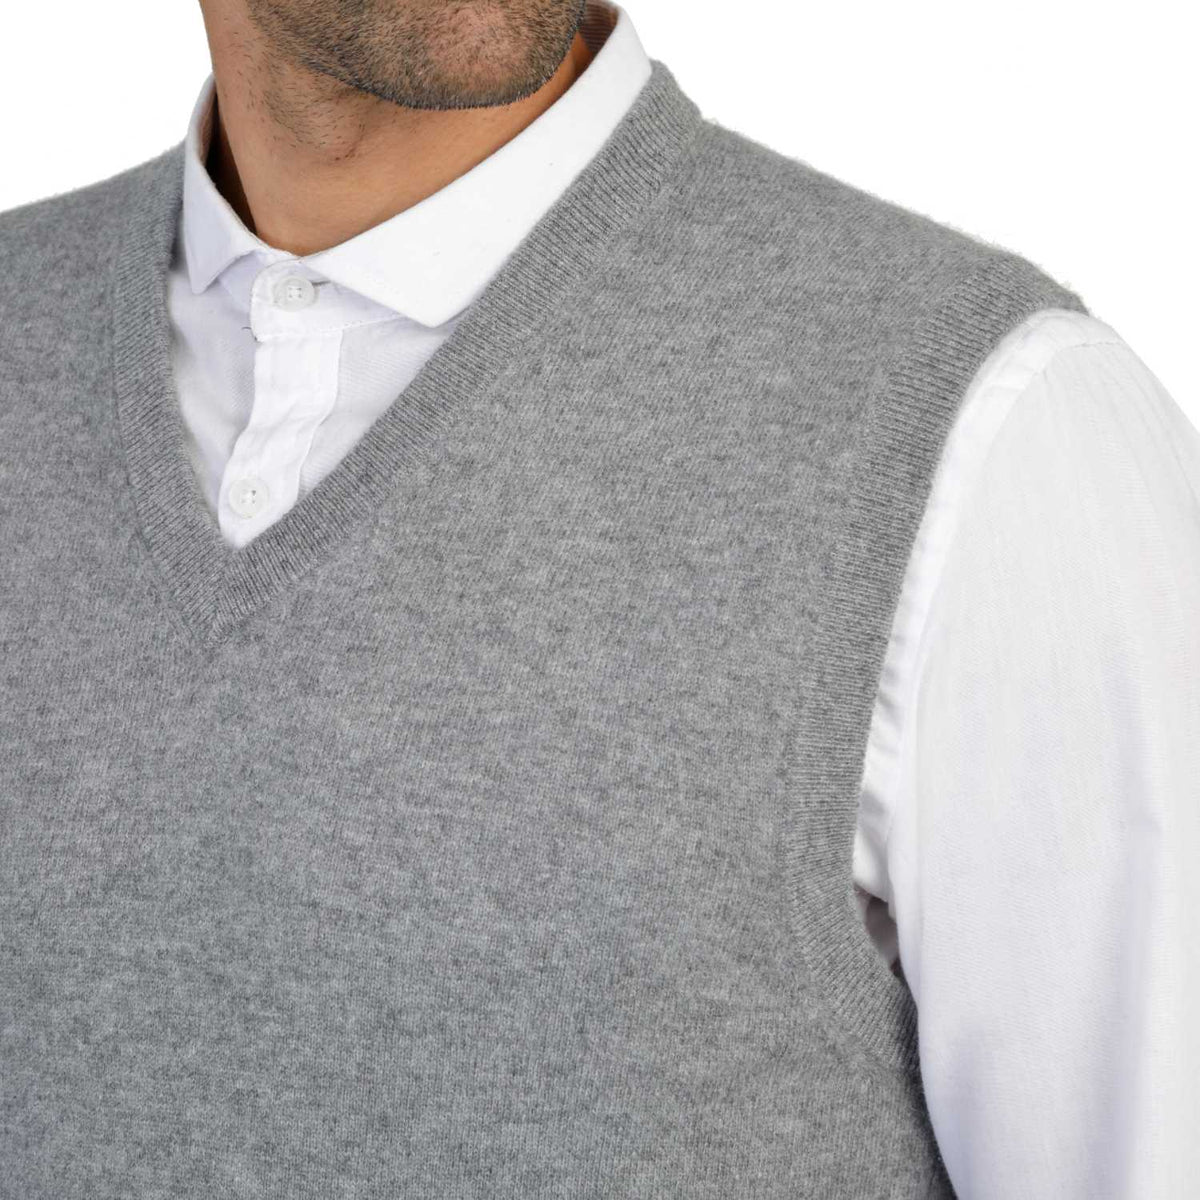 Mens Grey Cashmere Sleeveless Vest Sweater | Close up | Shop at The Cashmere Choice | London